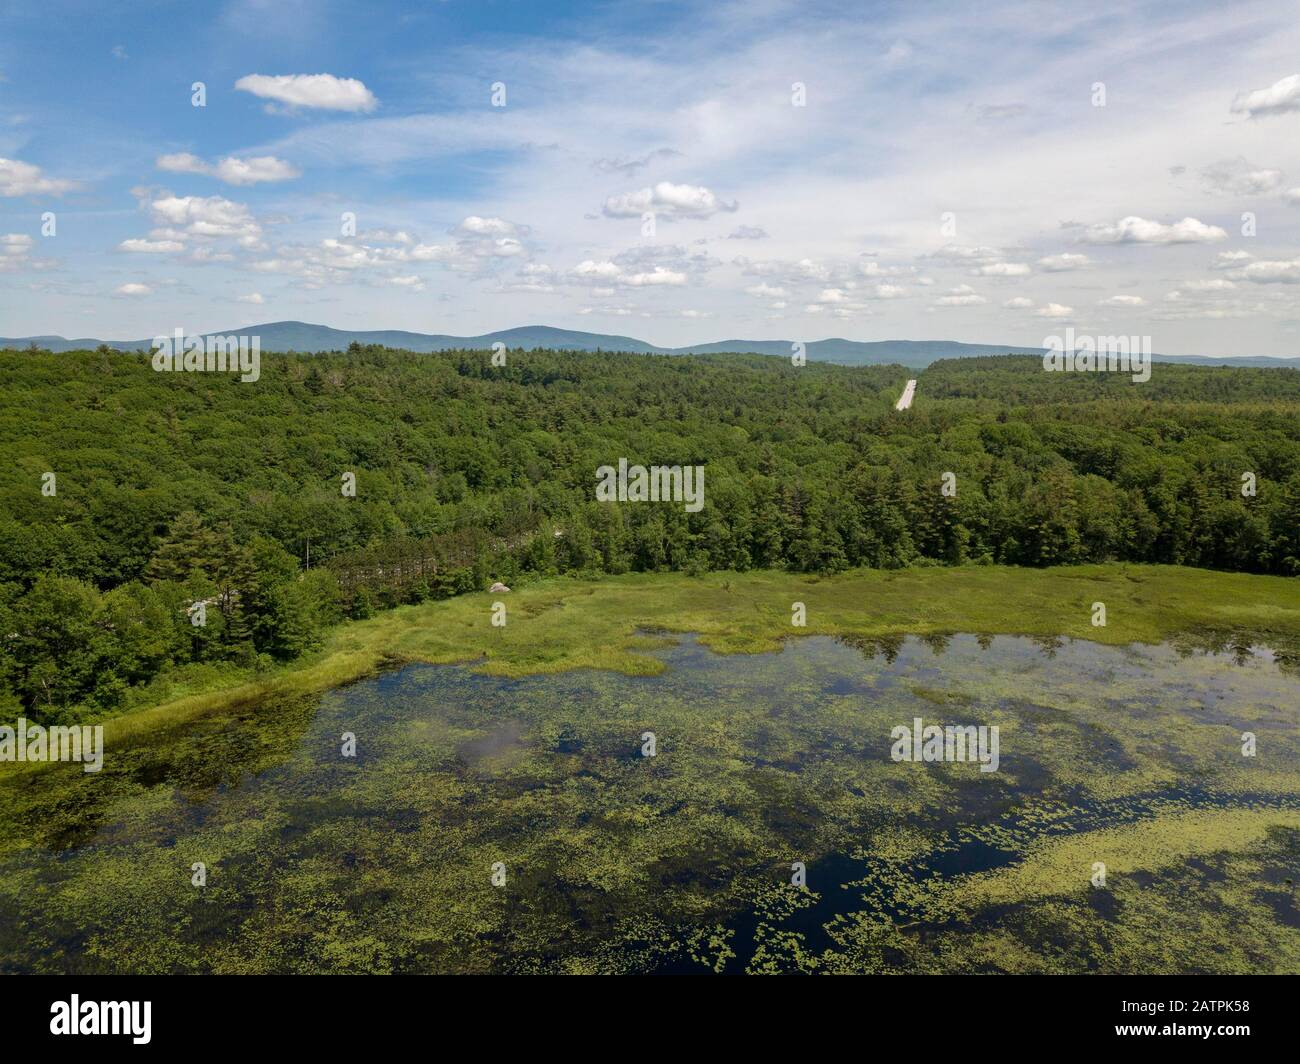 Aerial view of Mud Pond, Dublin, New Hampshire, USA Stock Photo